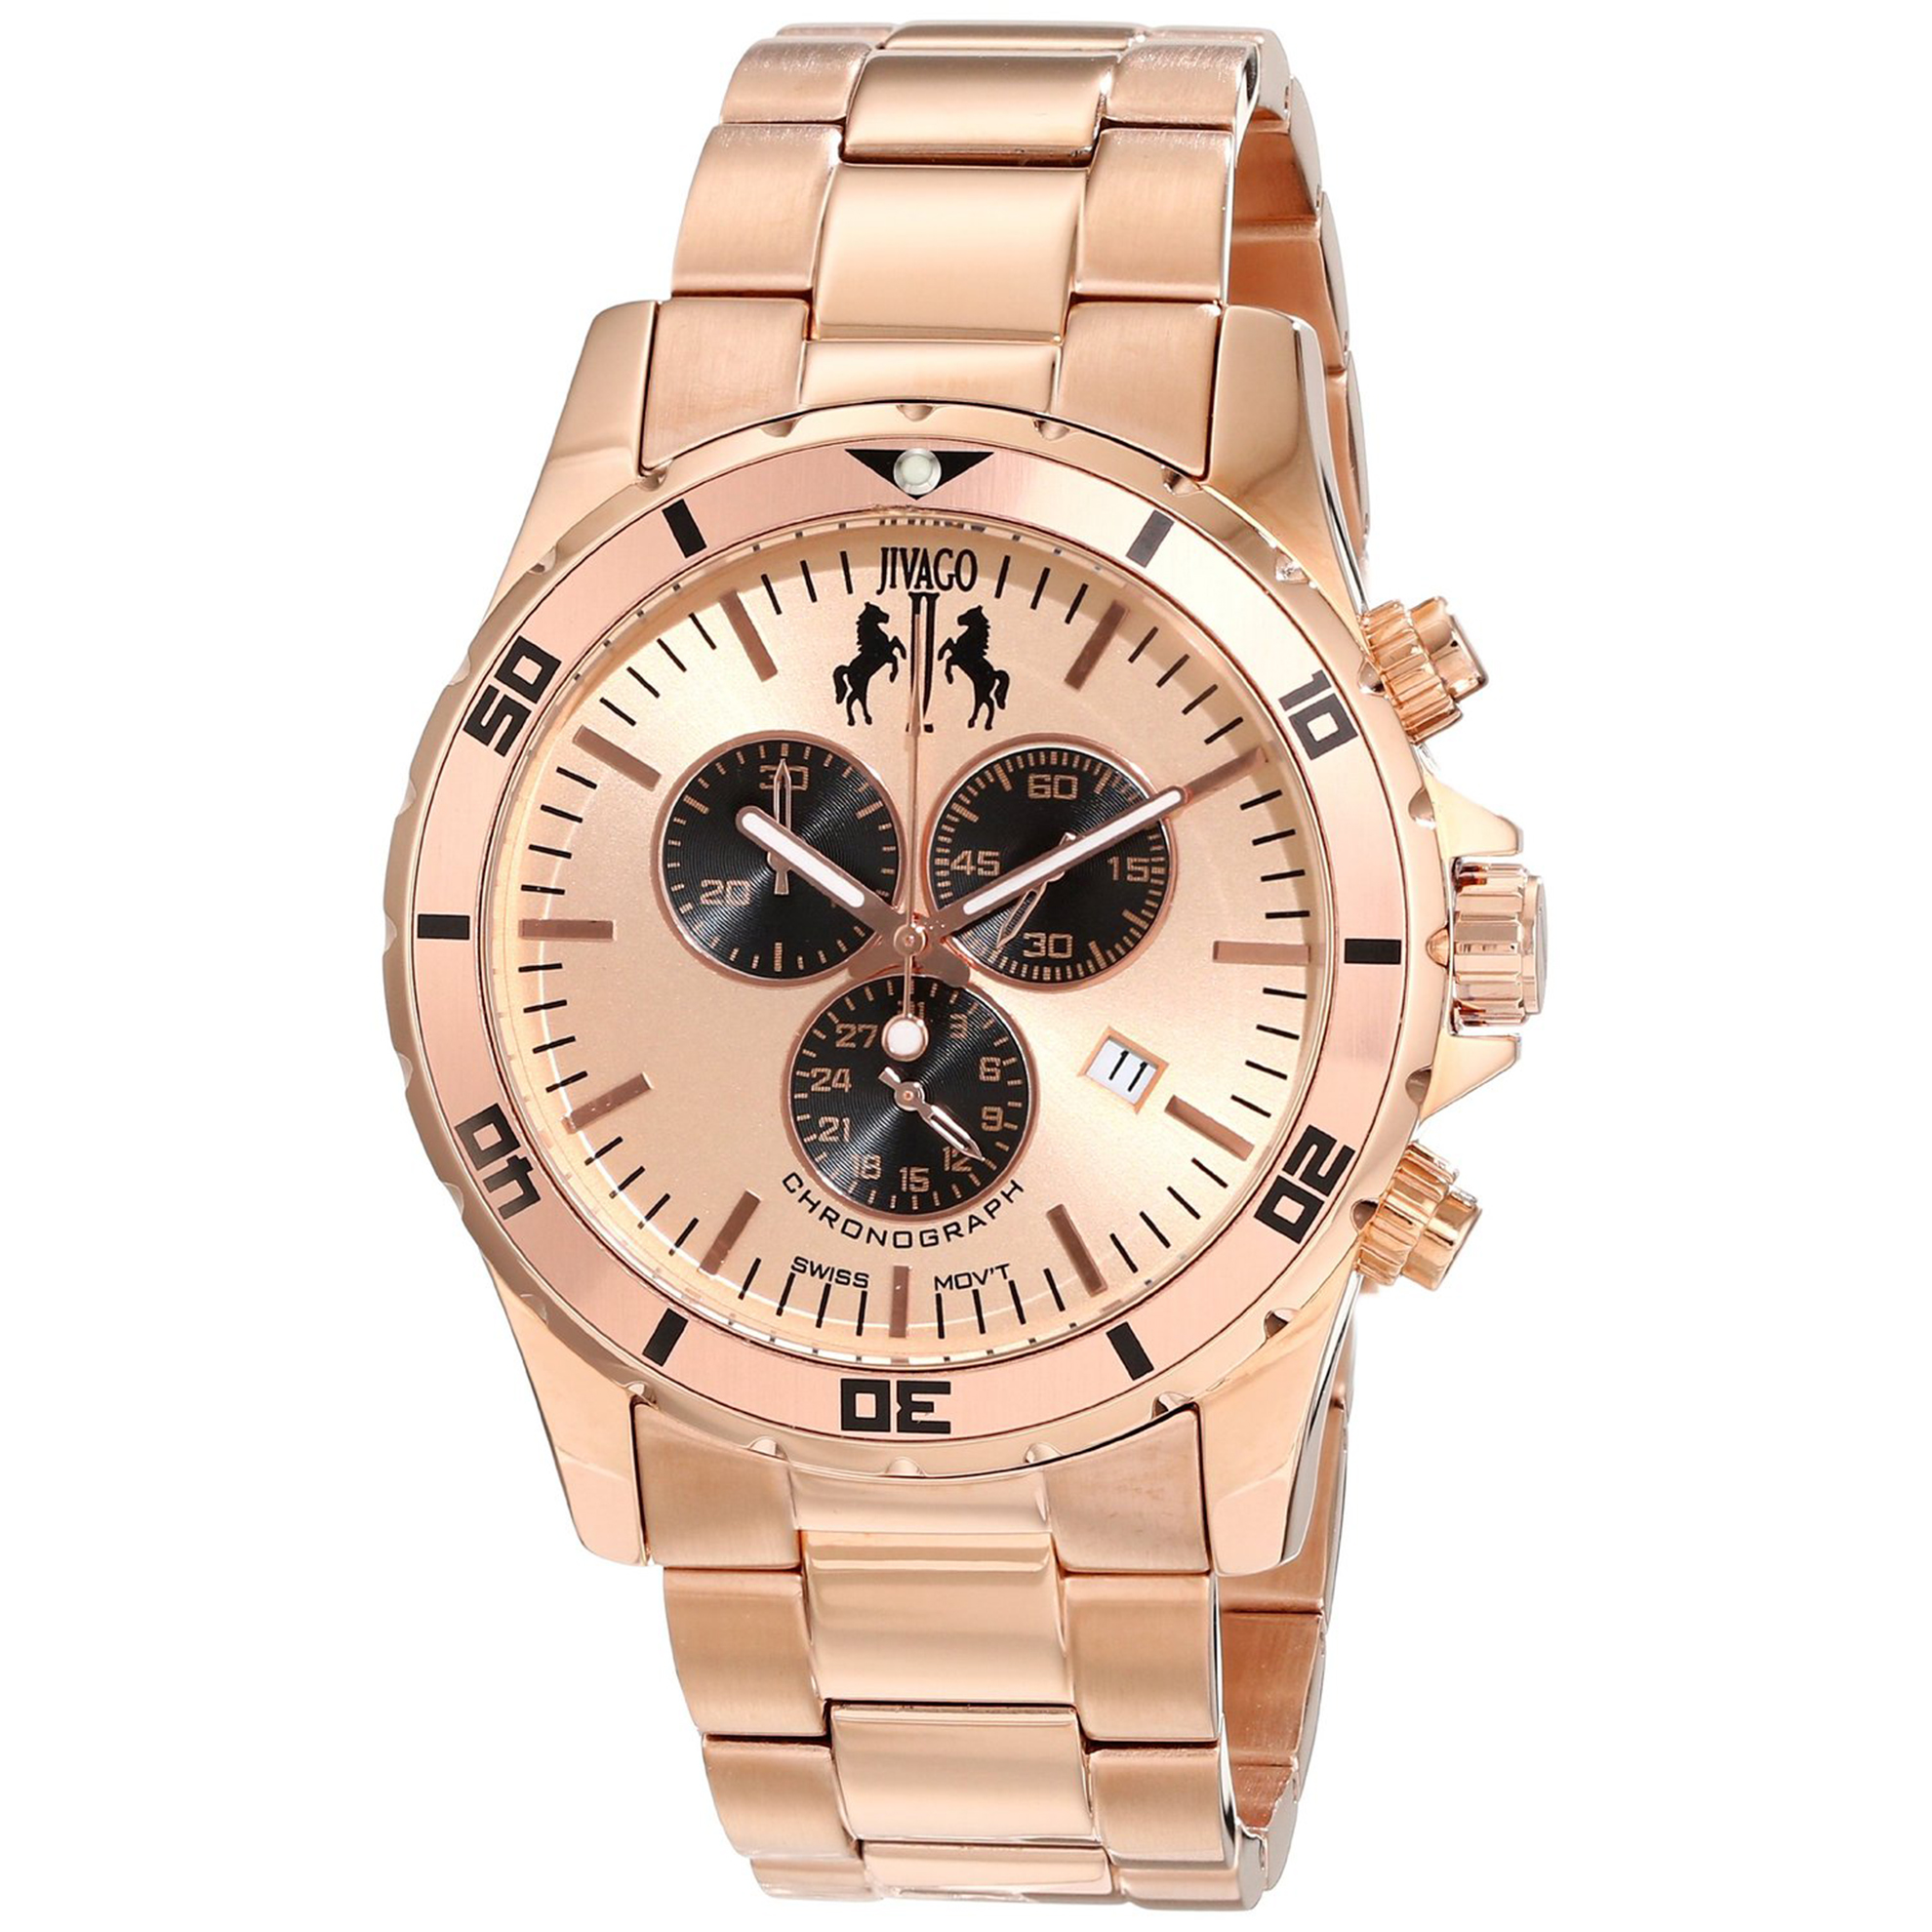 Jivago JV6123 Jivago Men's Ultimate Diver Swiss Chronograph Rose Gold